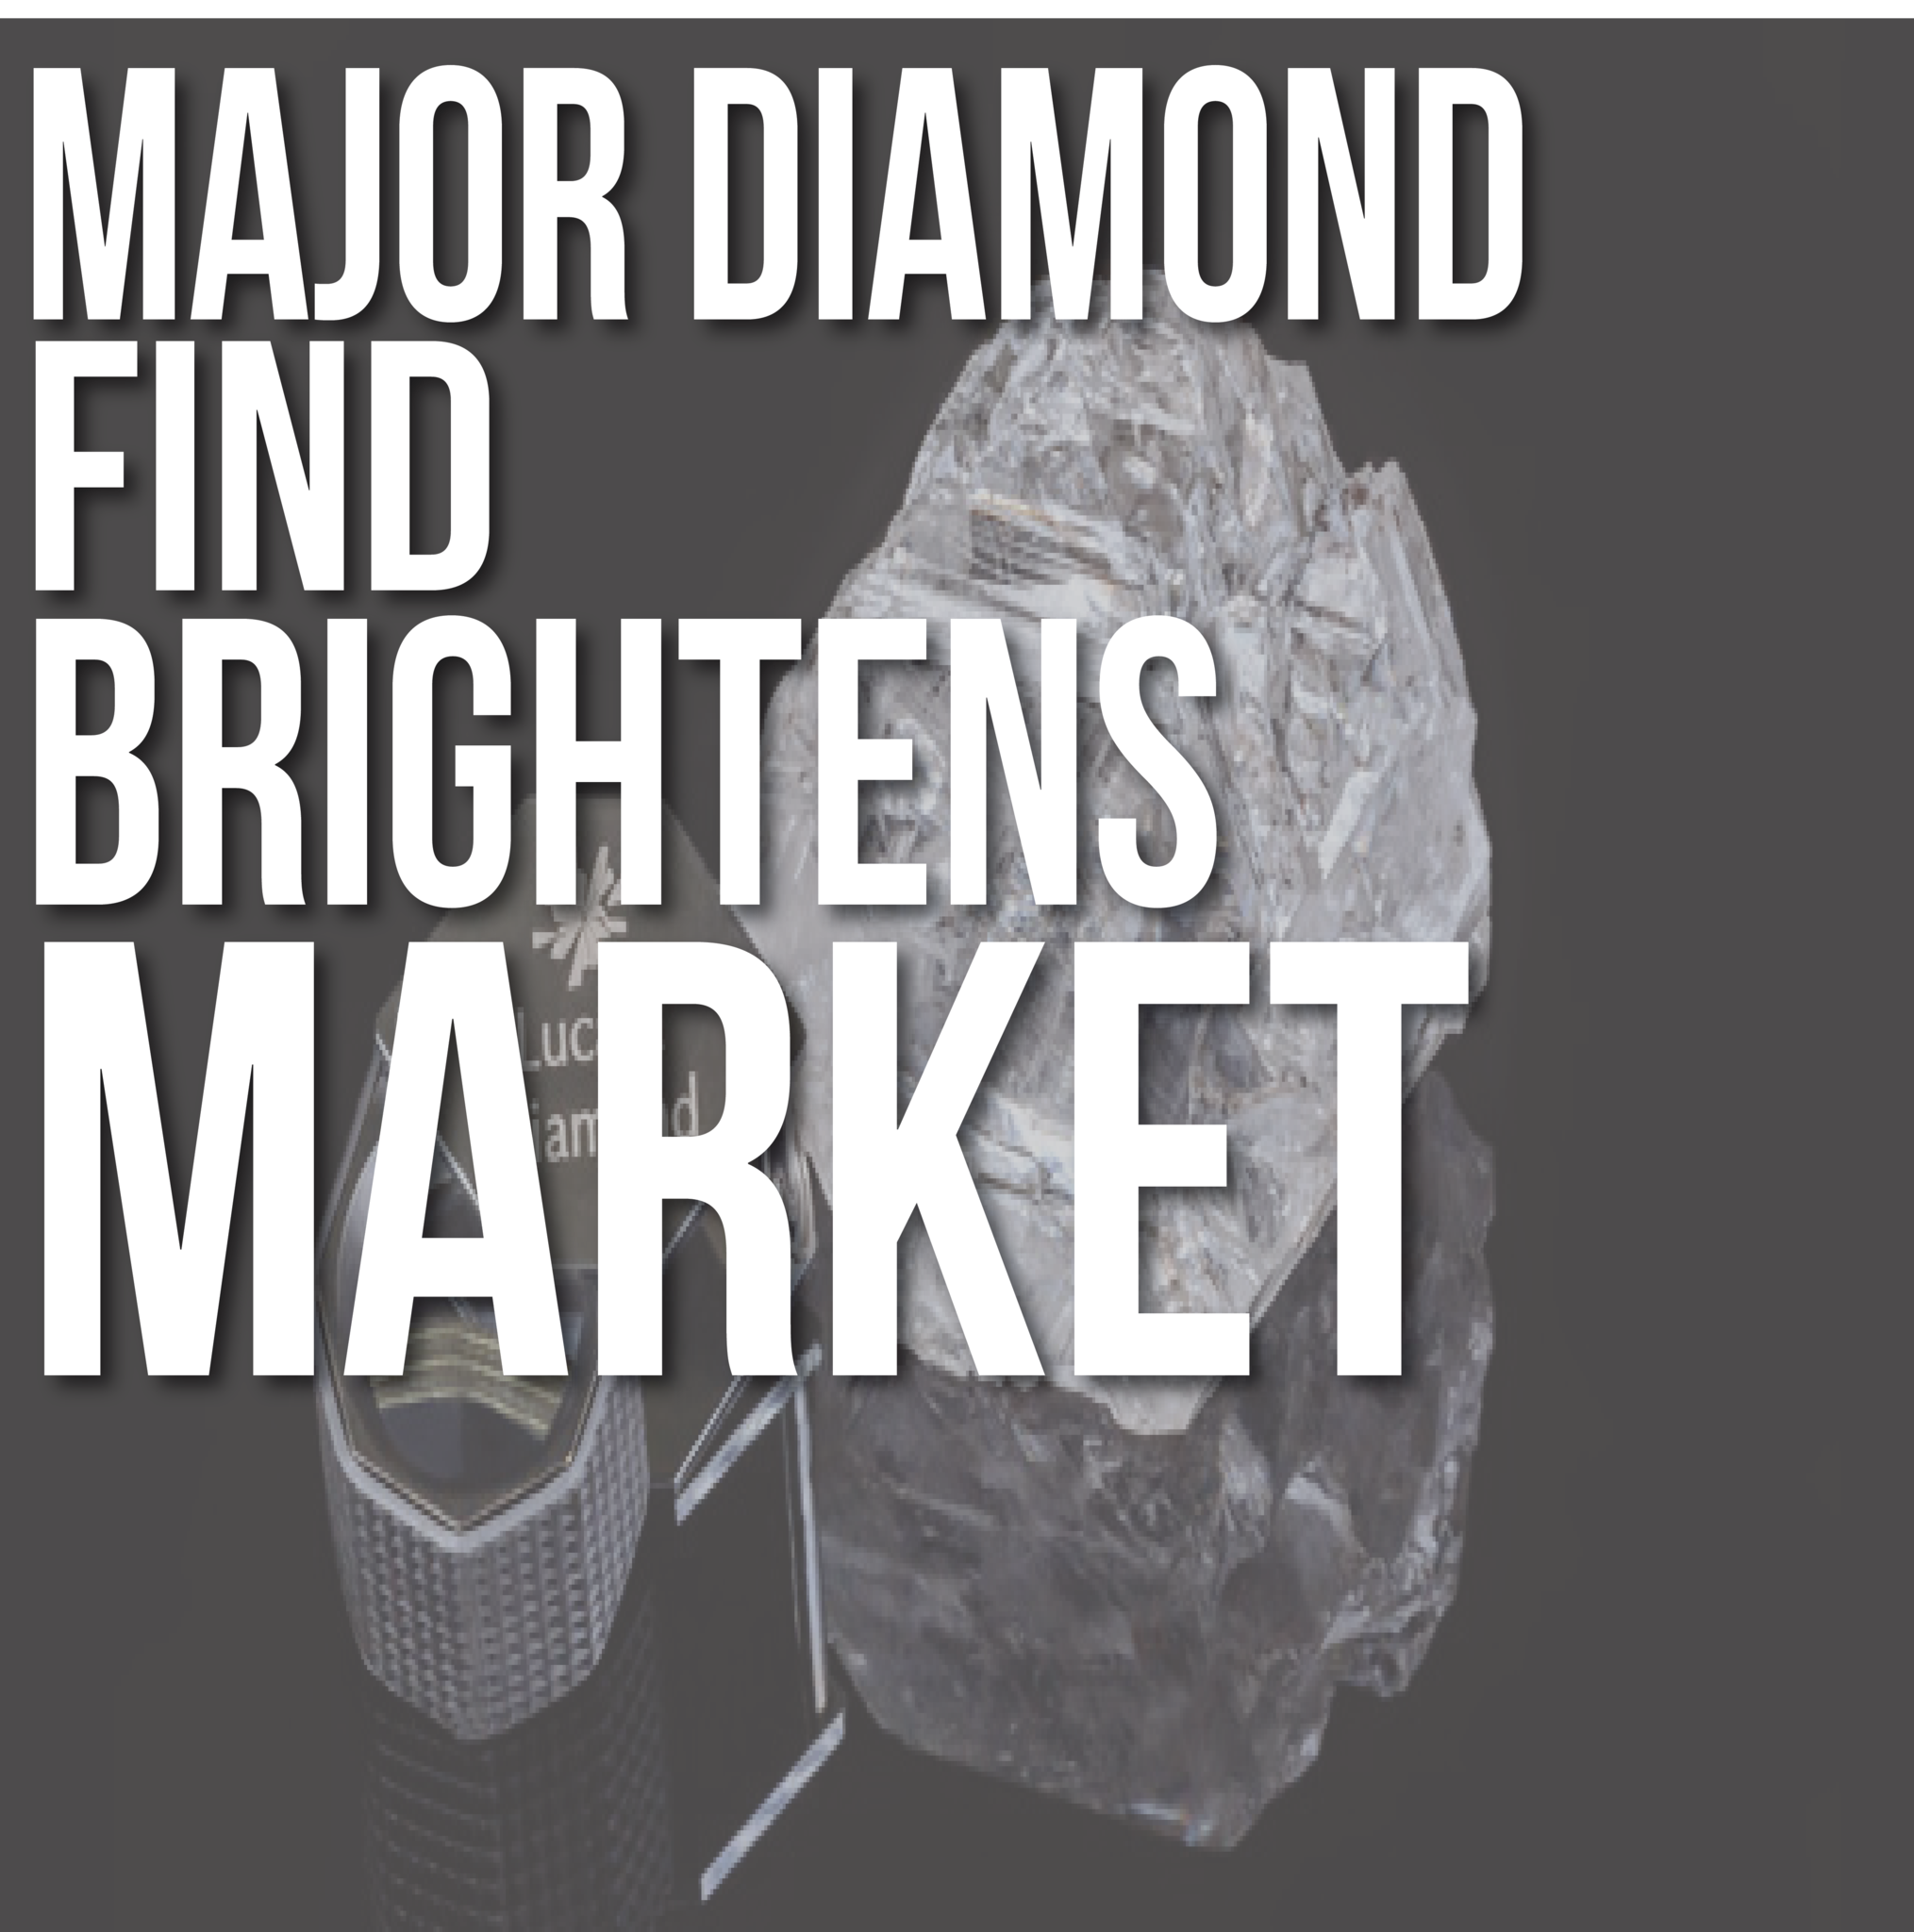 Major Diamond Find Brightens Market